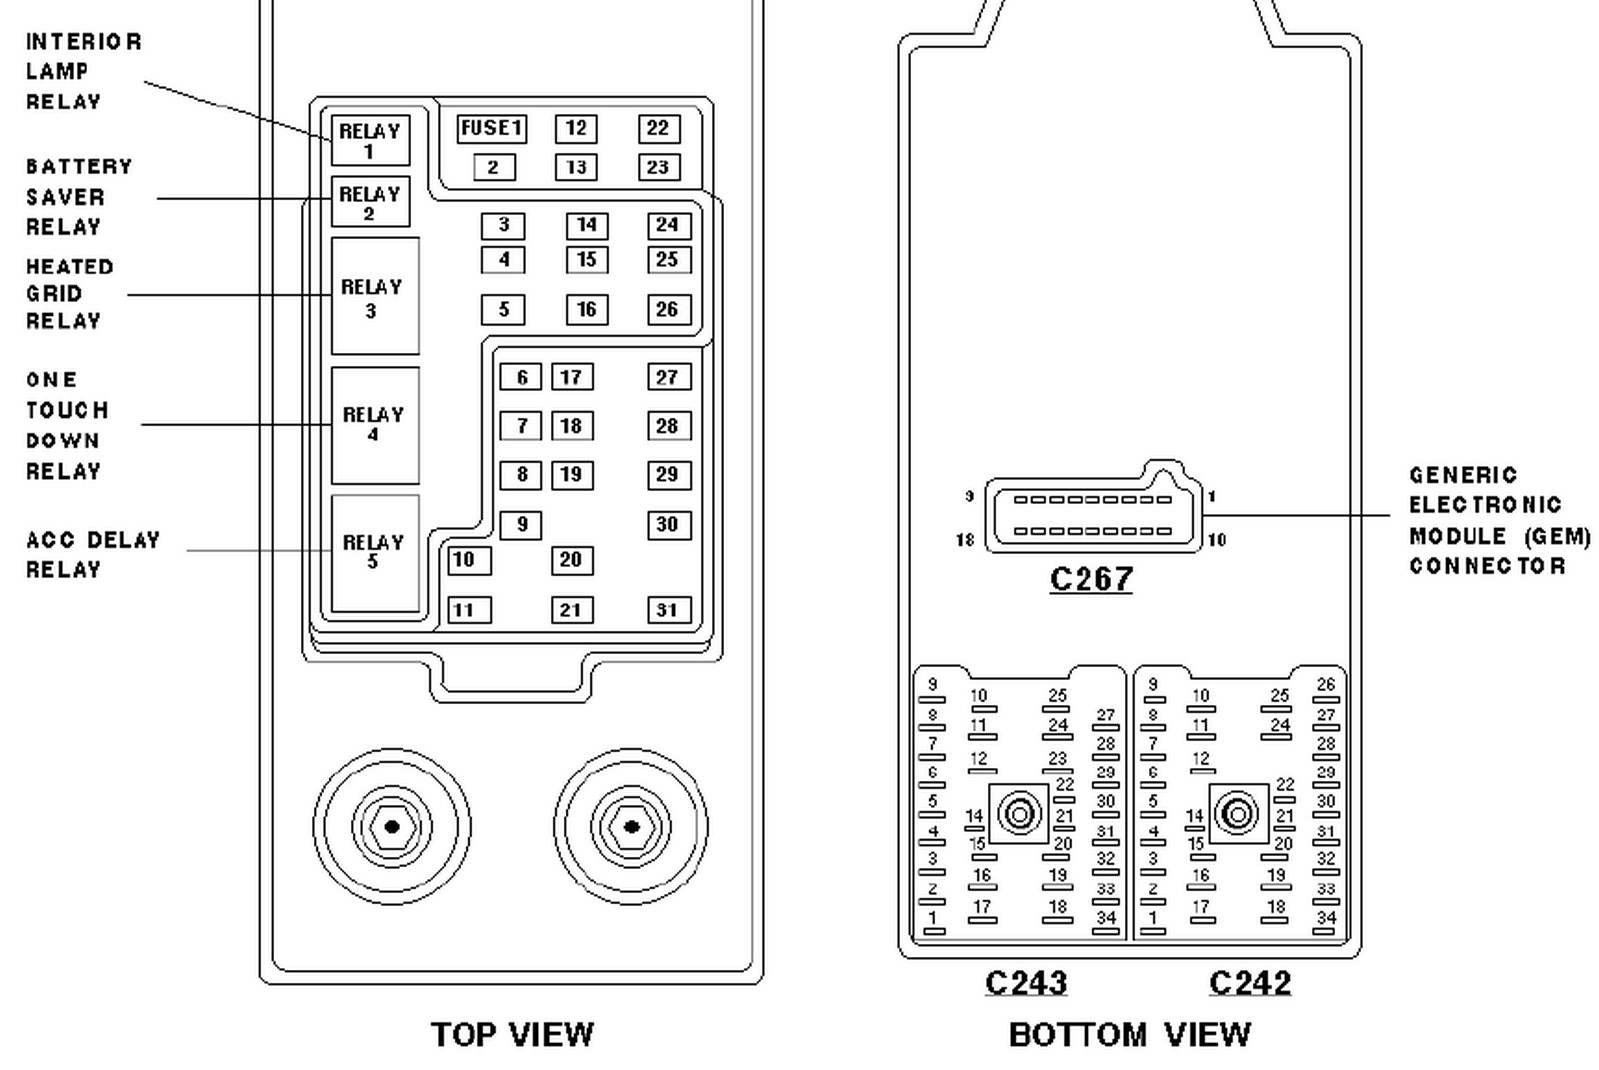 1997 ford expedition fuse box diagram image details ford truck f 750 fuse  diagram 1997 ford